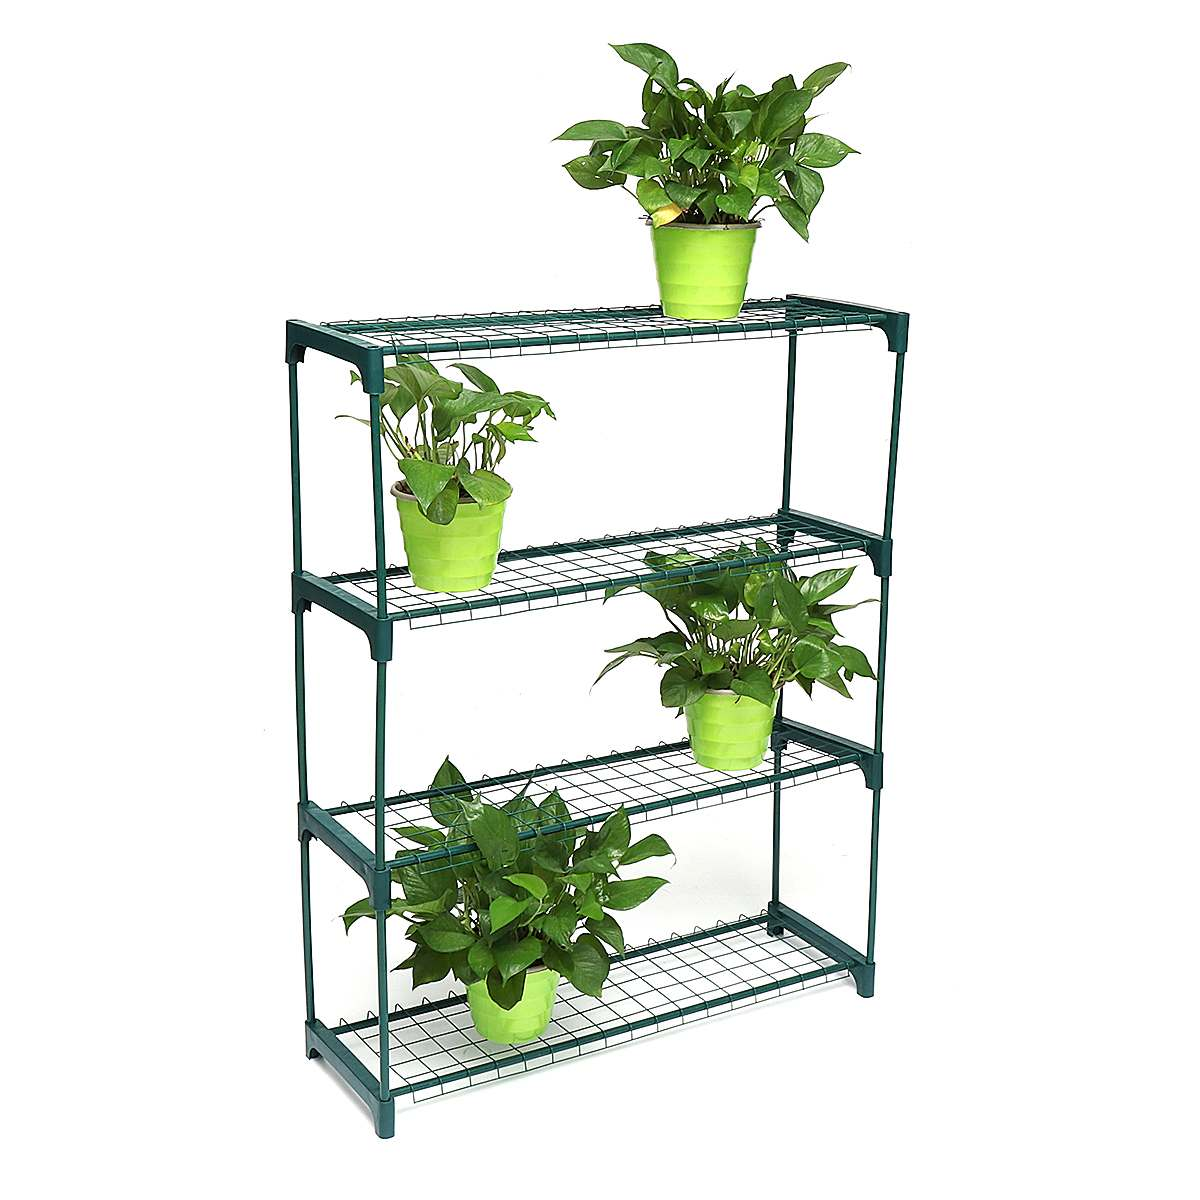 4 Tier Simple Iron Plant Shelves Flower Pot Stand Display Decor Home Garden Plants Holder Multi-function Storage Rack